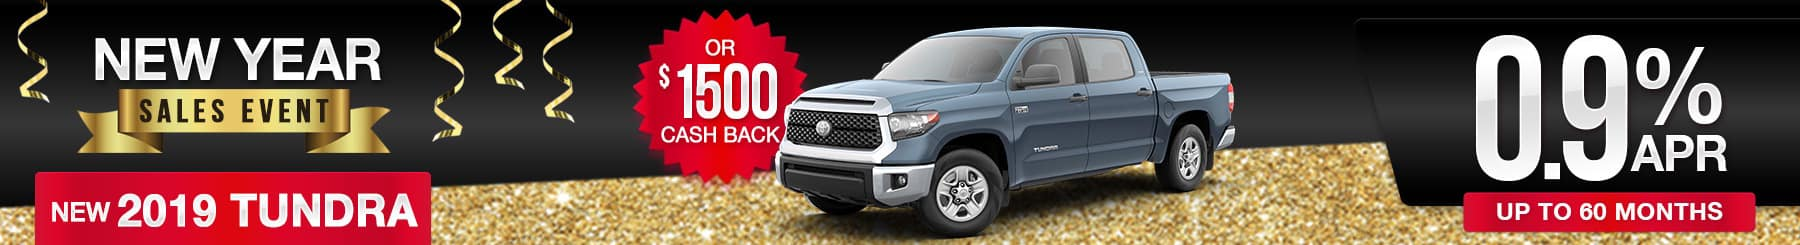 2019 Tundra Sales Deal